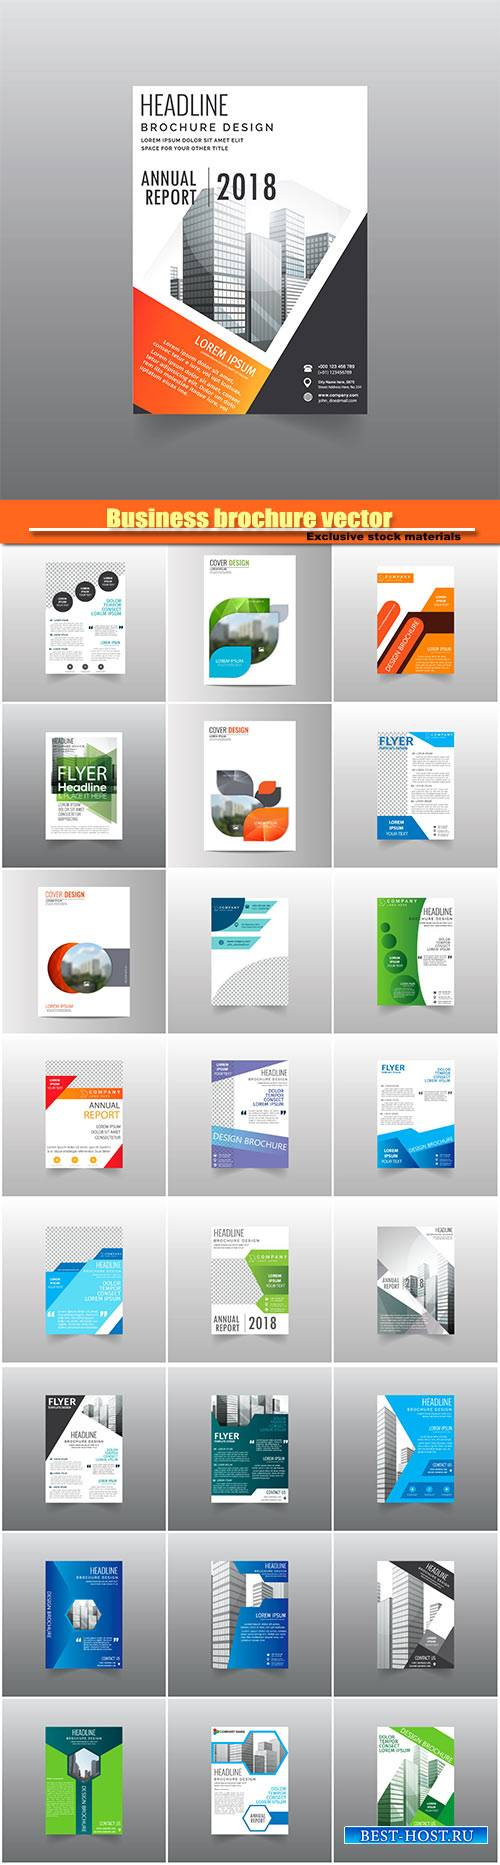 Business brochure vector, flyers templates #9